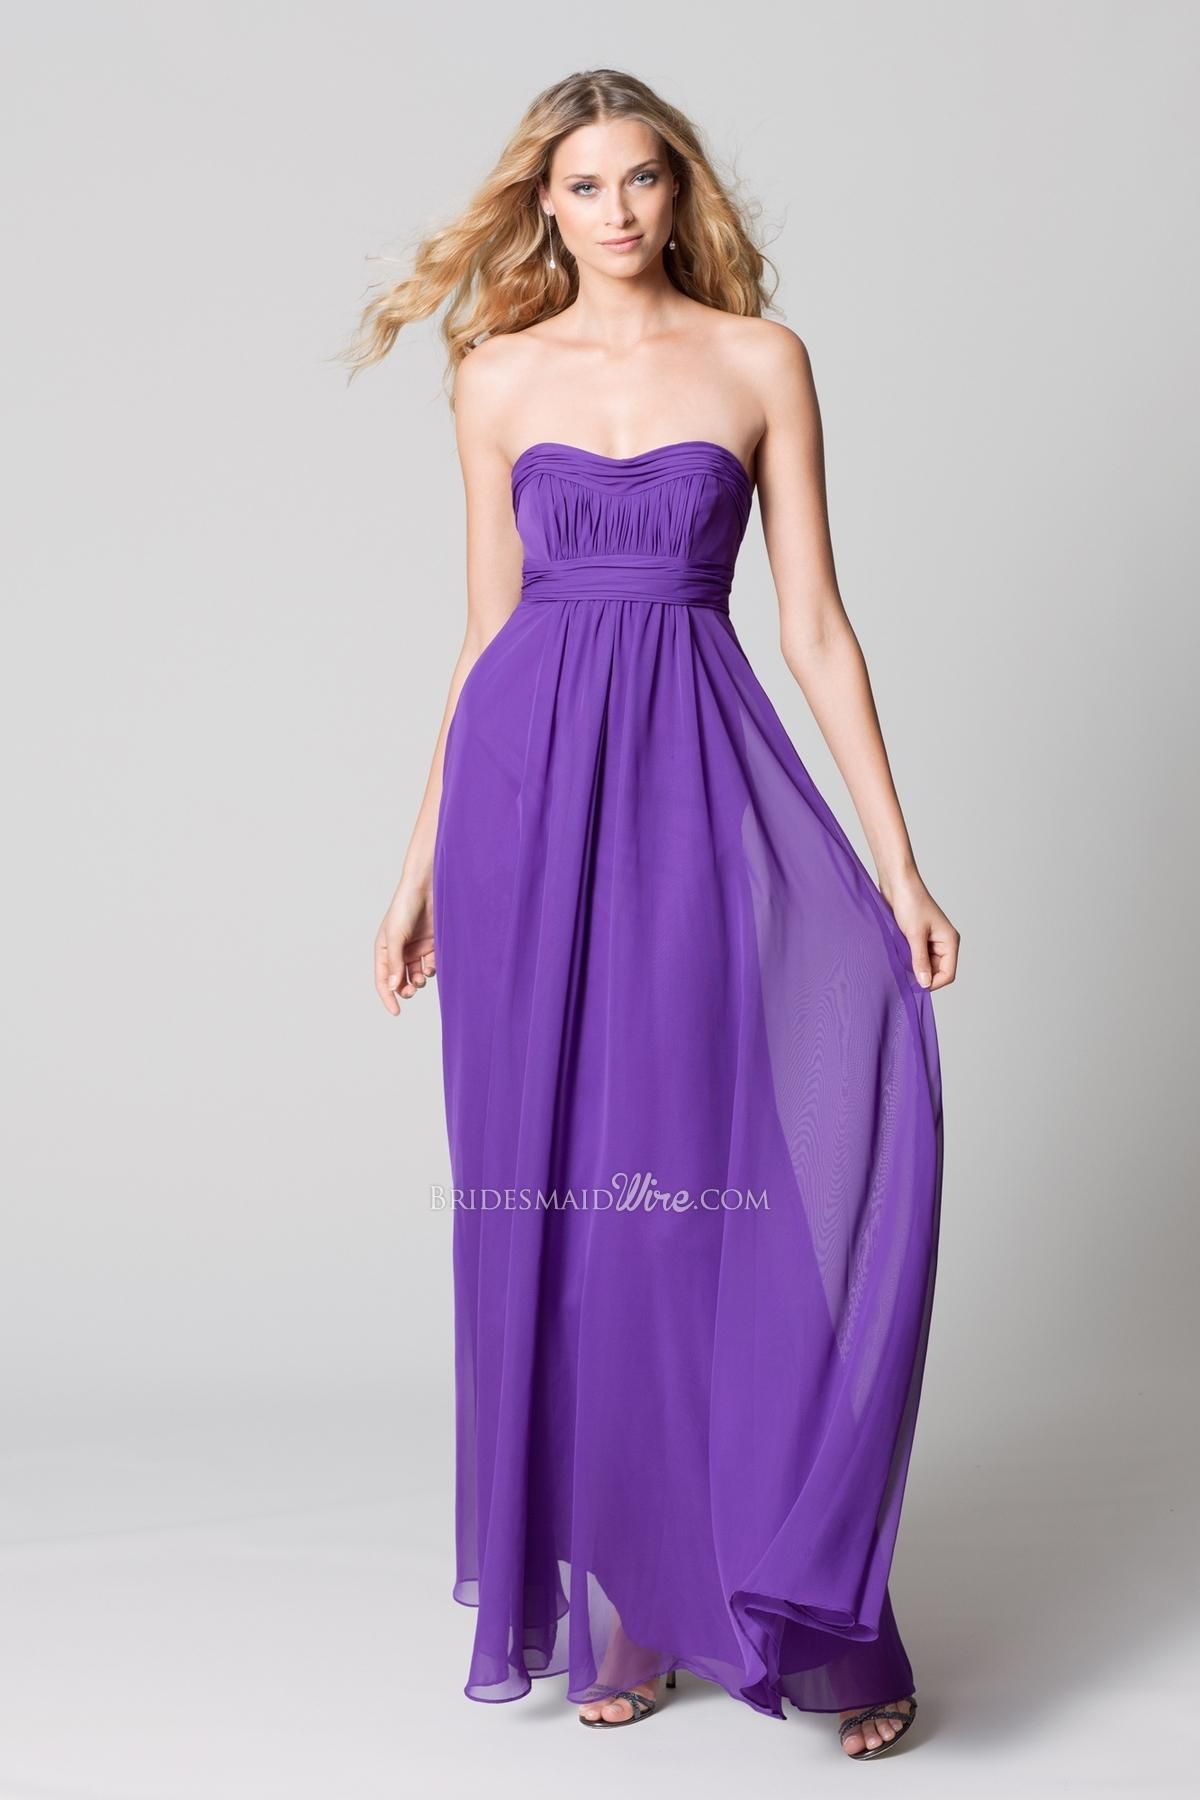 pansy crystal chiffon strapless empire shirred floor-length dress ...